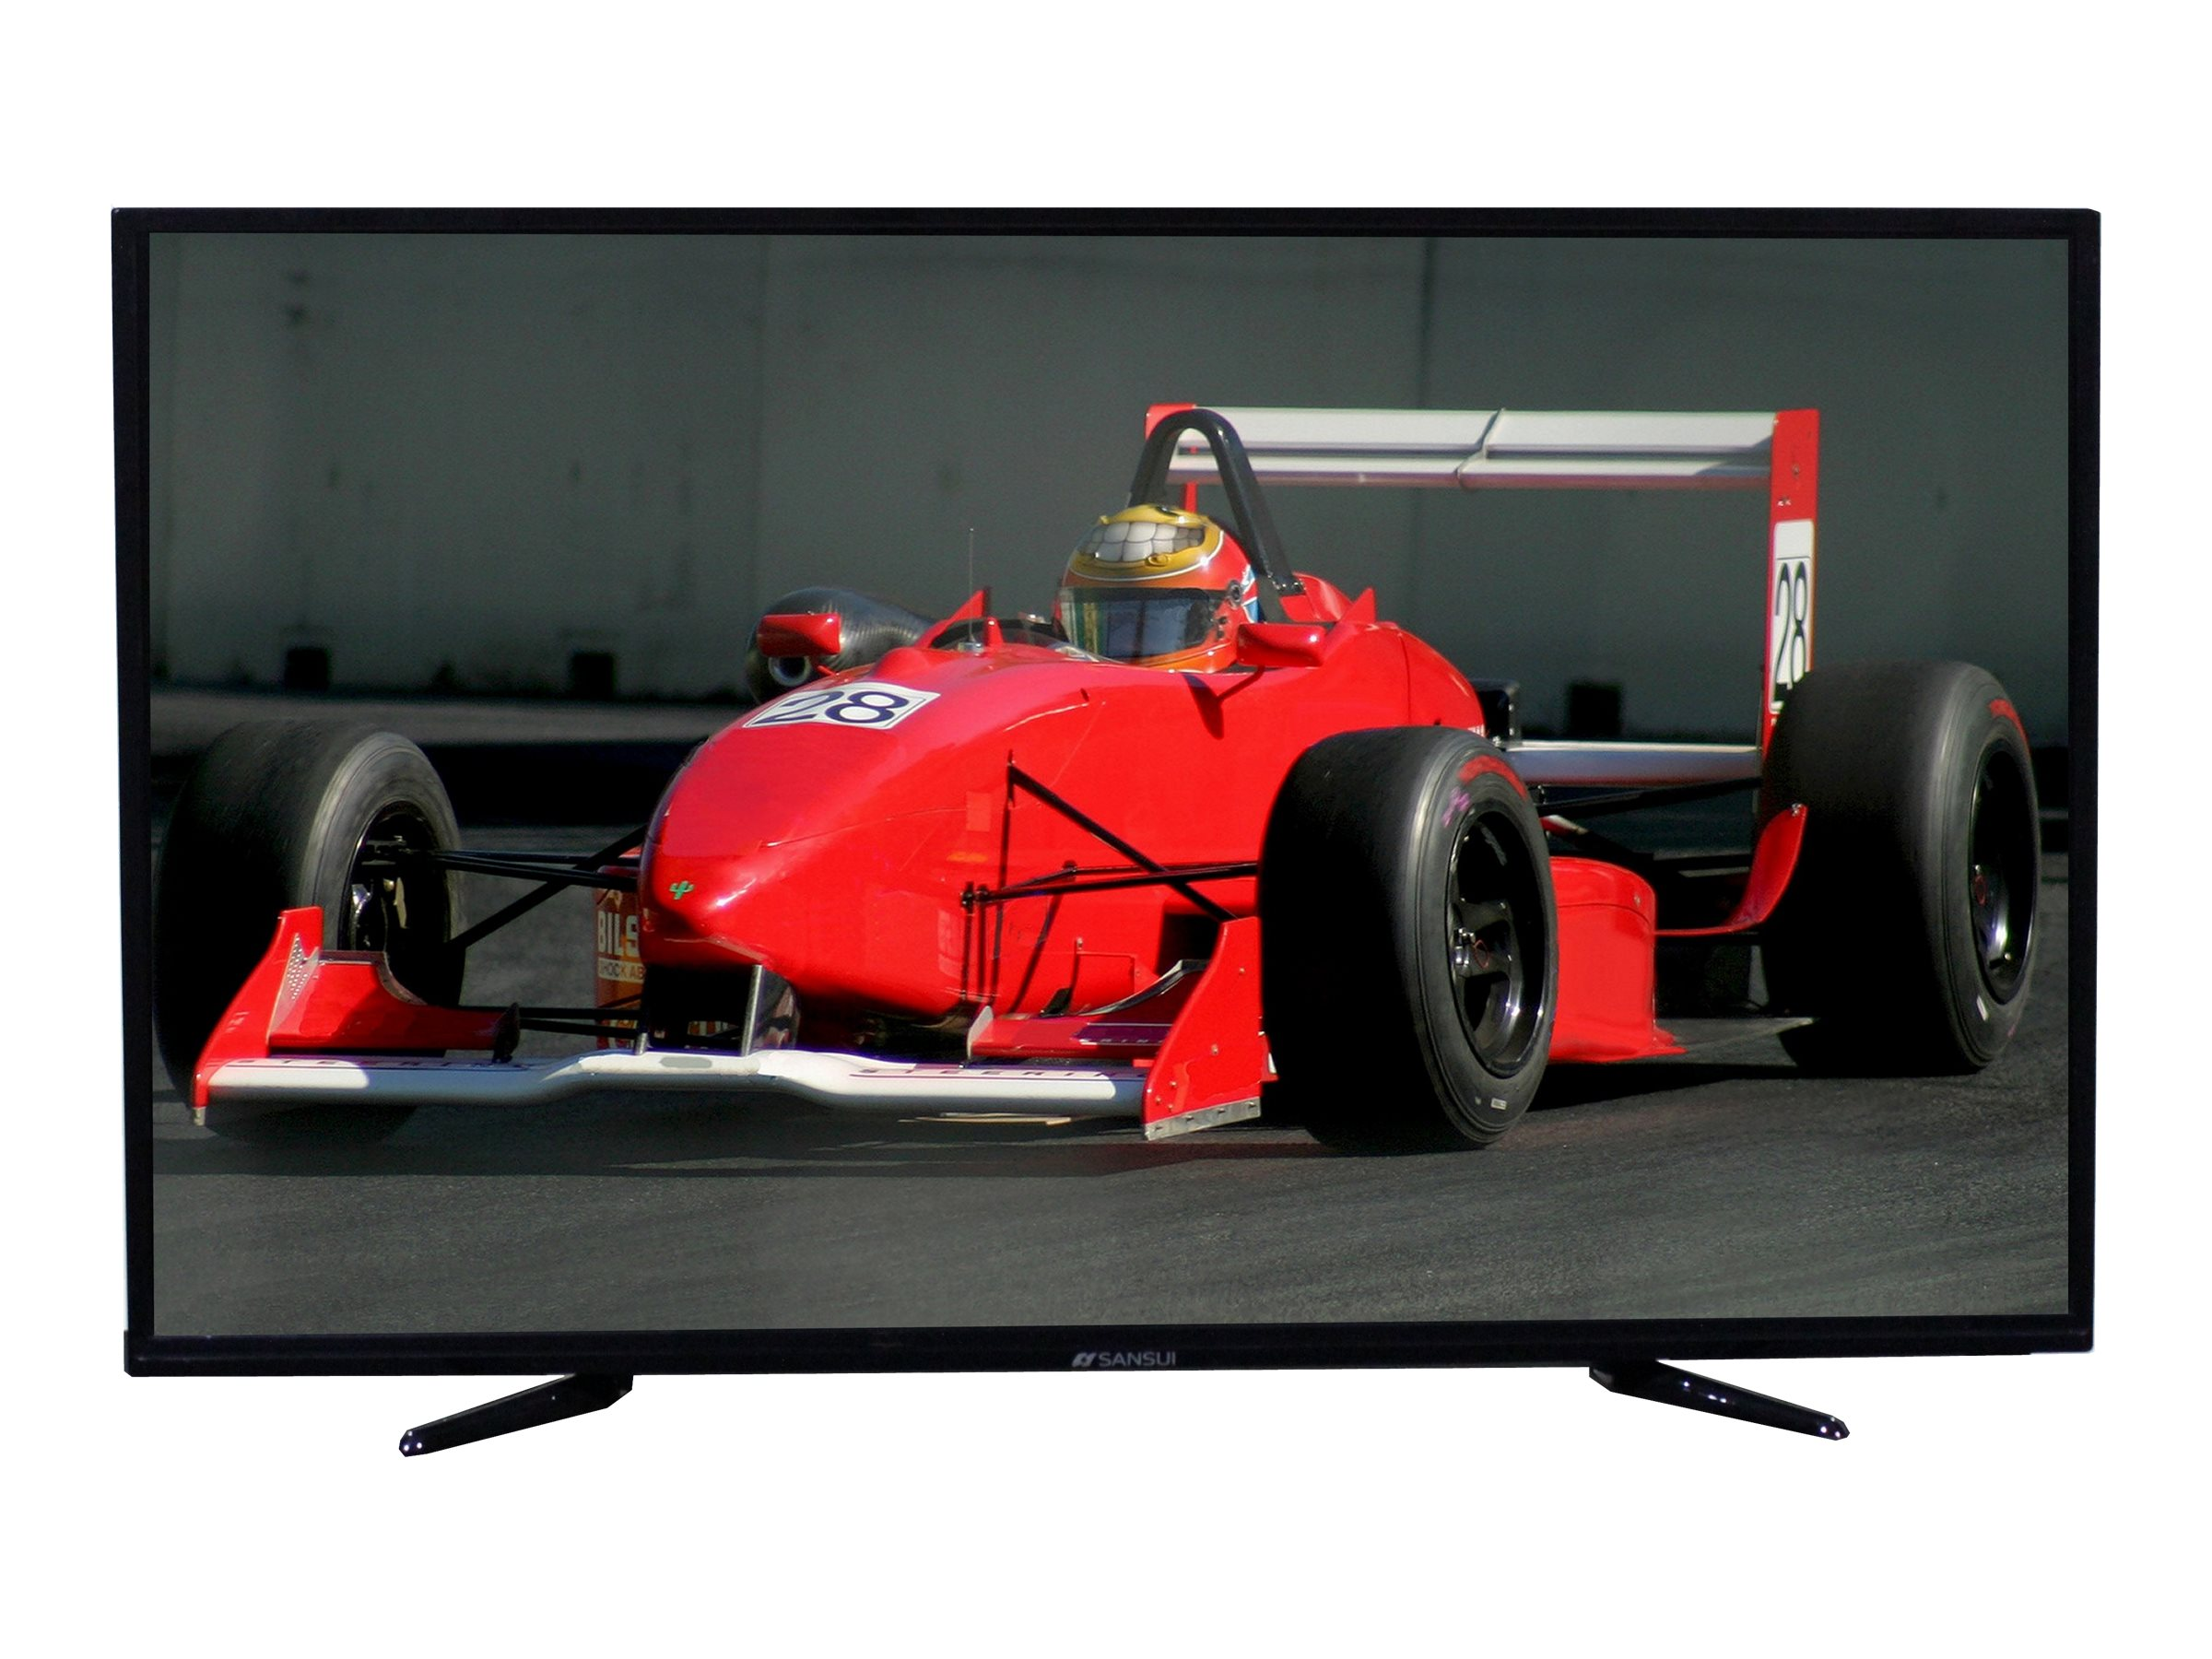 Sansui 42 SLED4216 4K Ultra HD LED-LCD TV, Black, SLED4216, 31951941, Televisions - LED-LCD Consumer